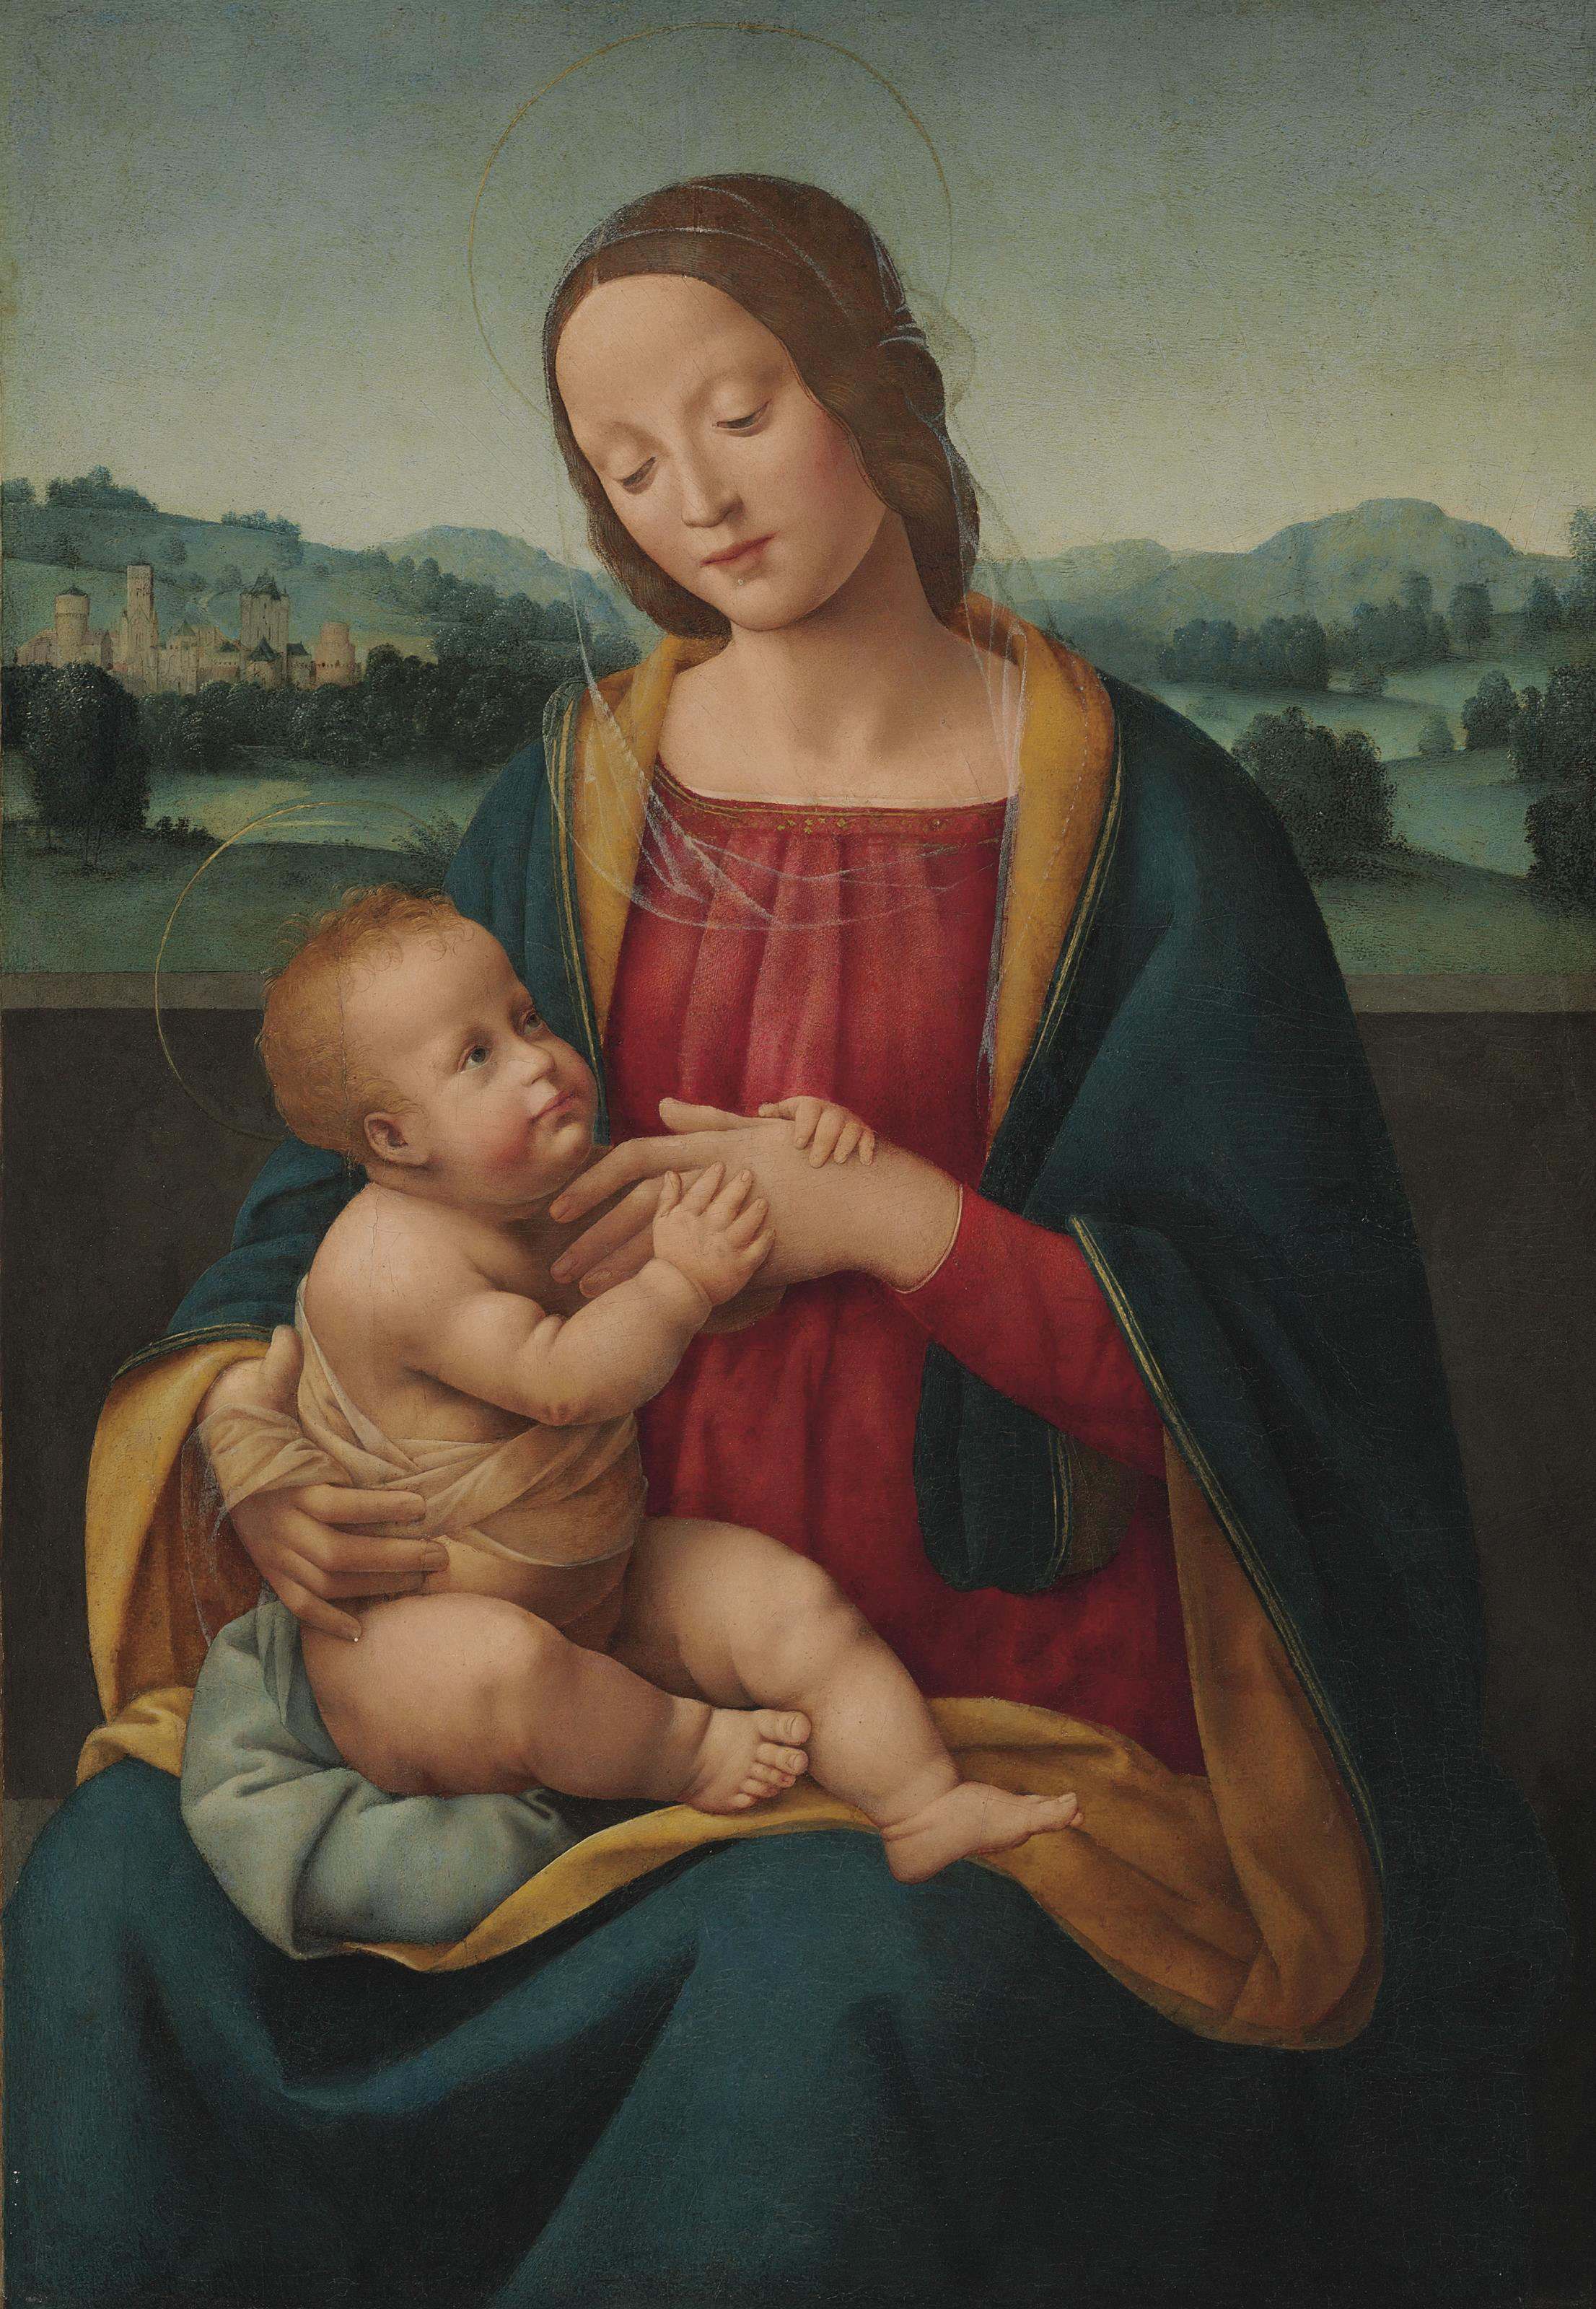 The Madonna and Child before a landscape